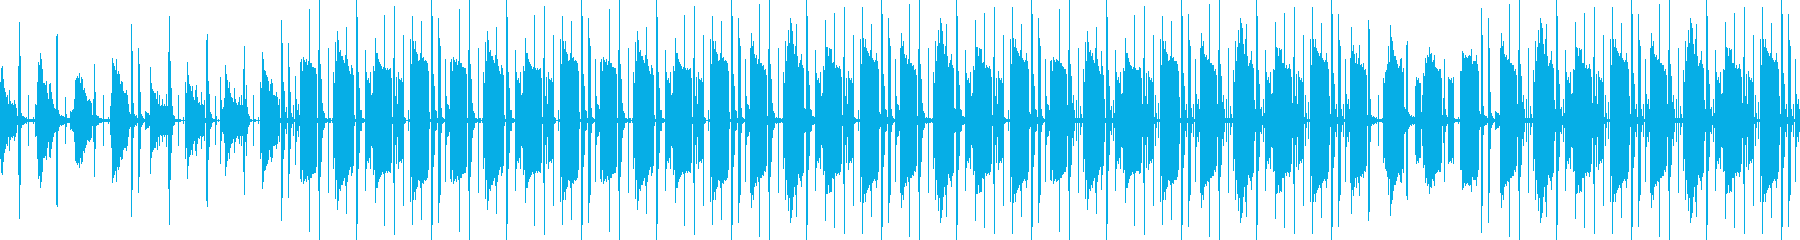 Calm BGM with an adult-like atmosphere's reproduced waveform